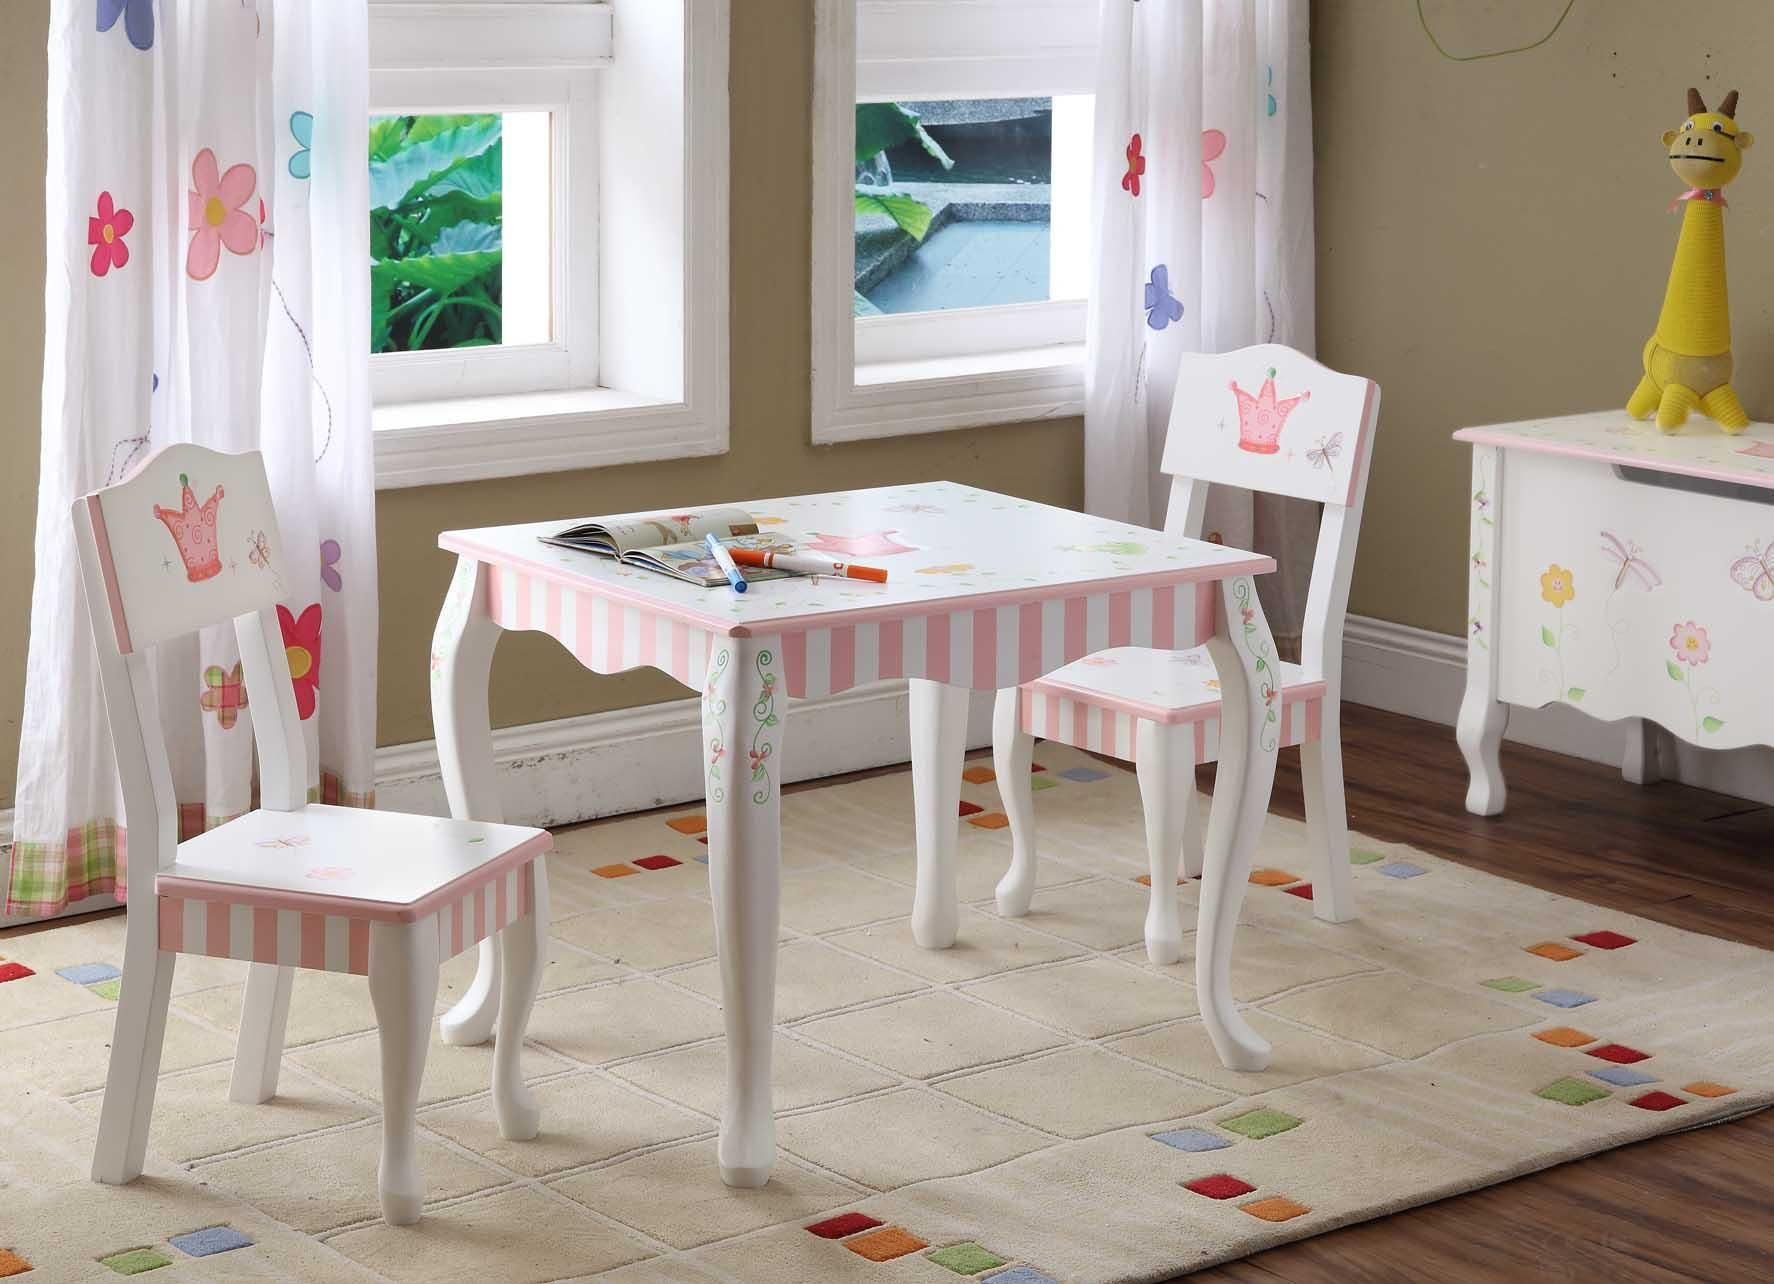 Furniture Kids Room Princess Themes White Painted Wooden Table and